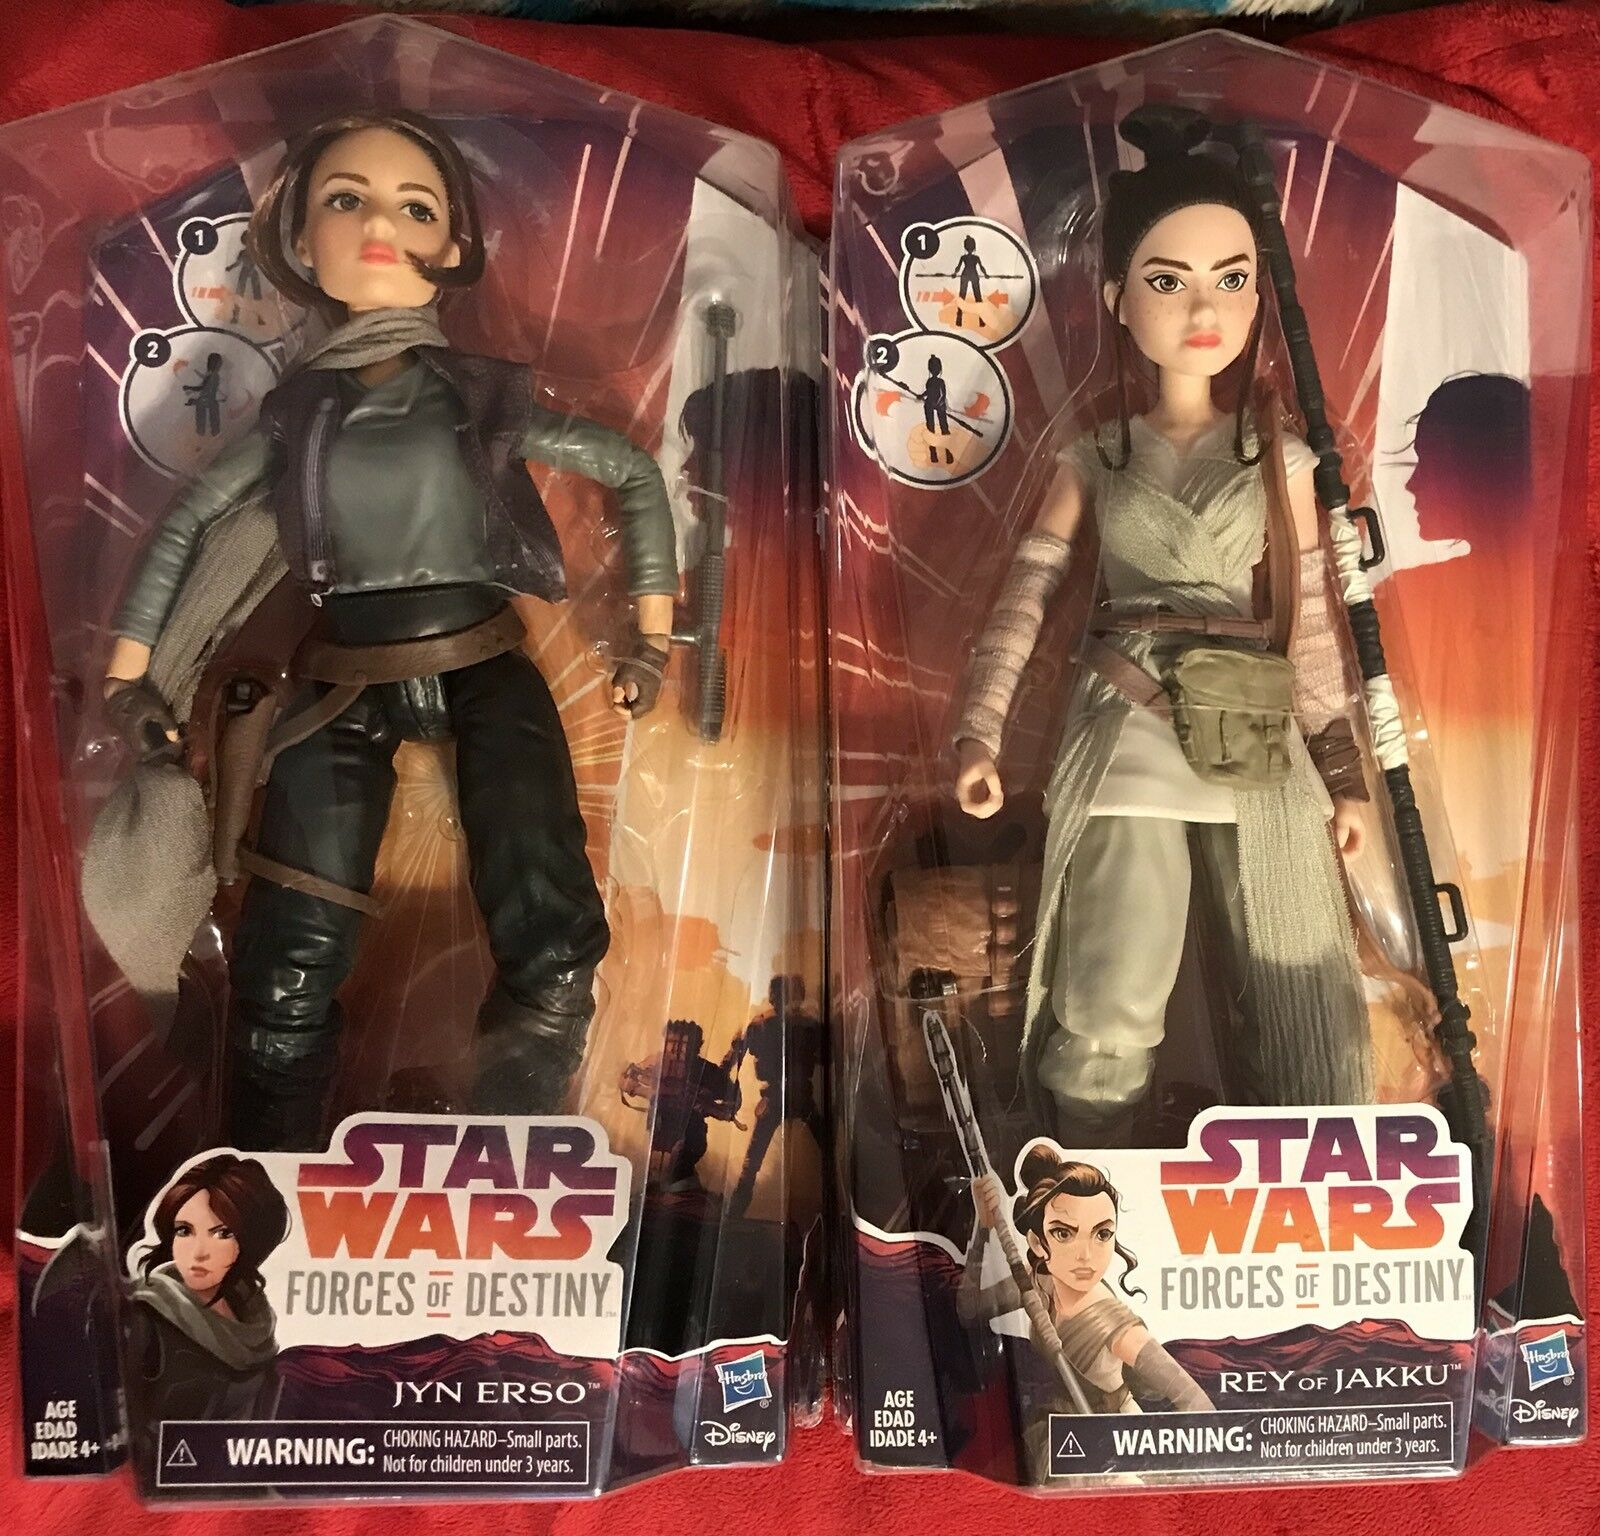 Star Wars Forces of Destiny Figures Rey of Jakku and Jyn Erso